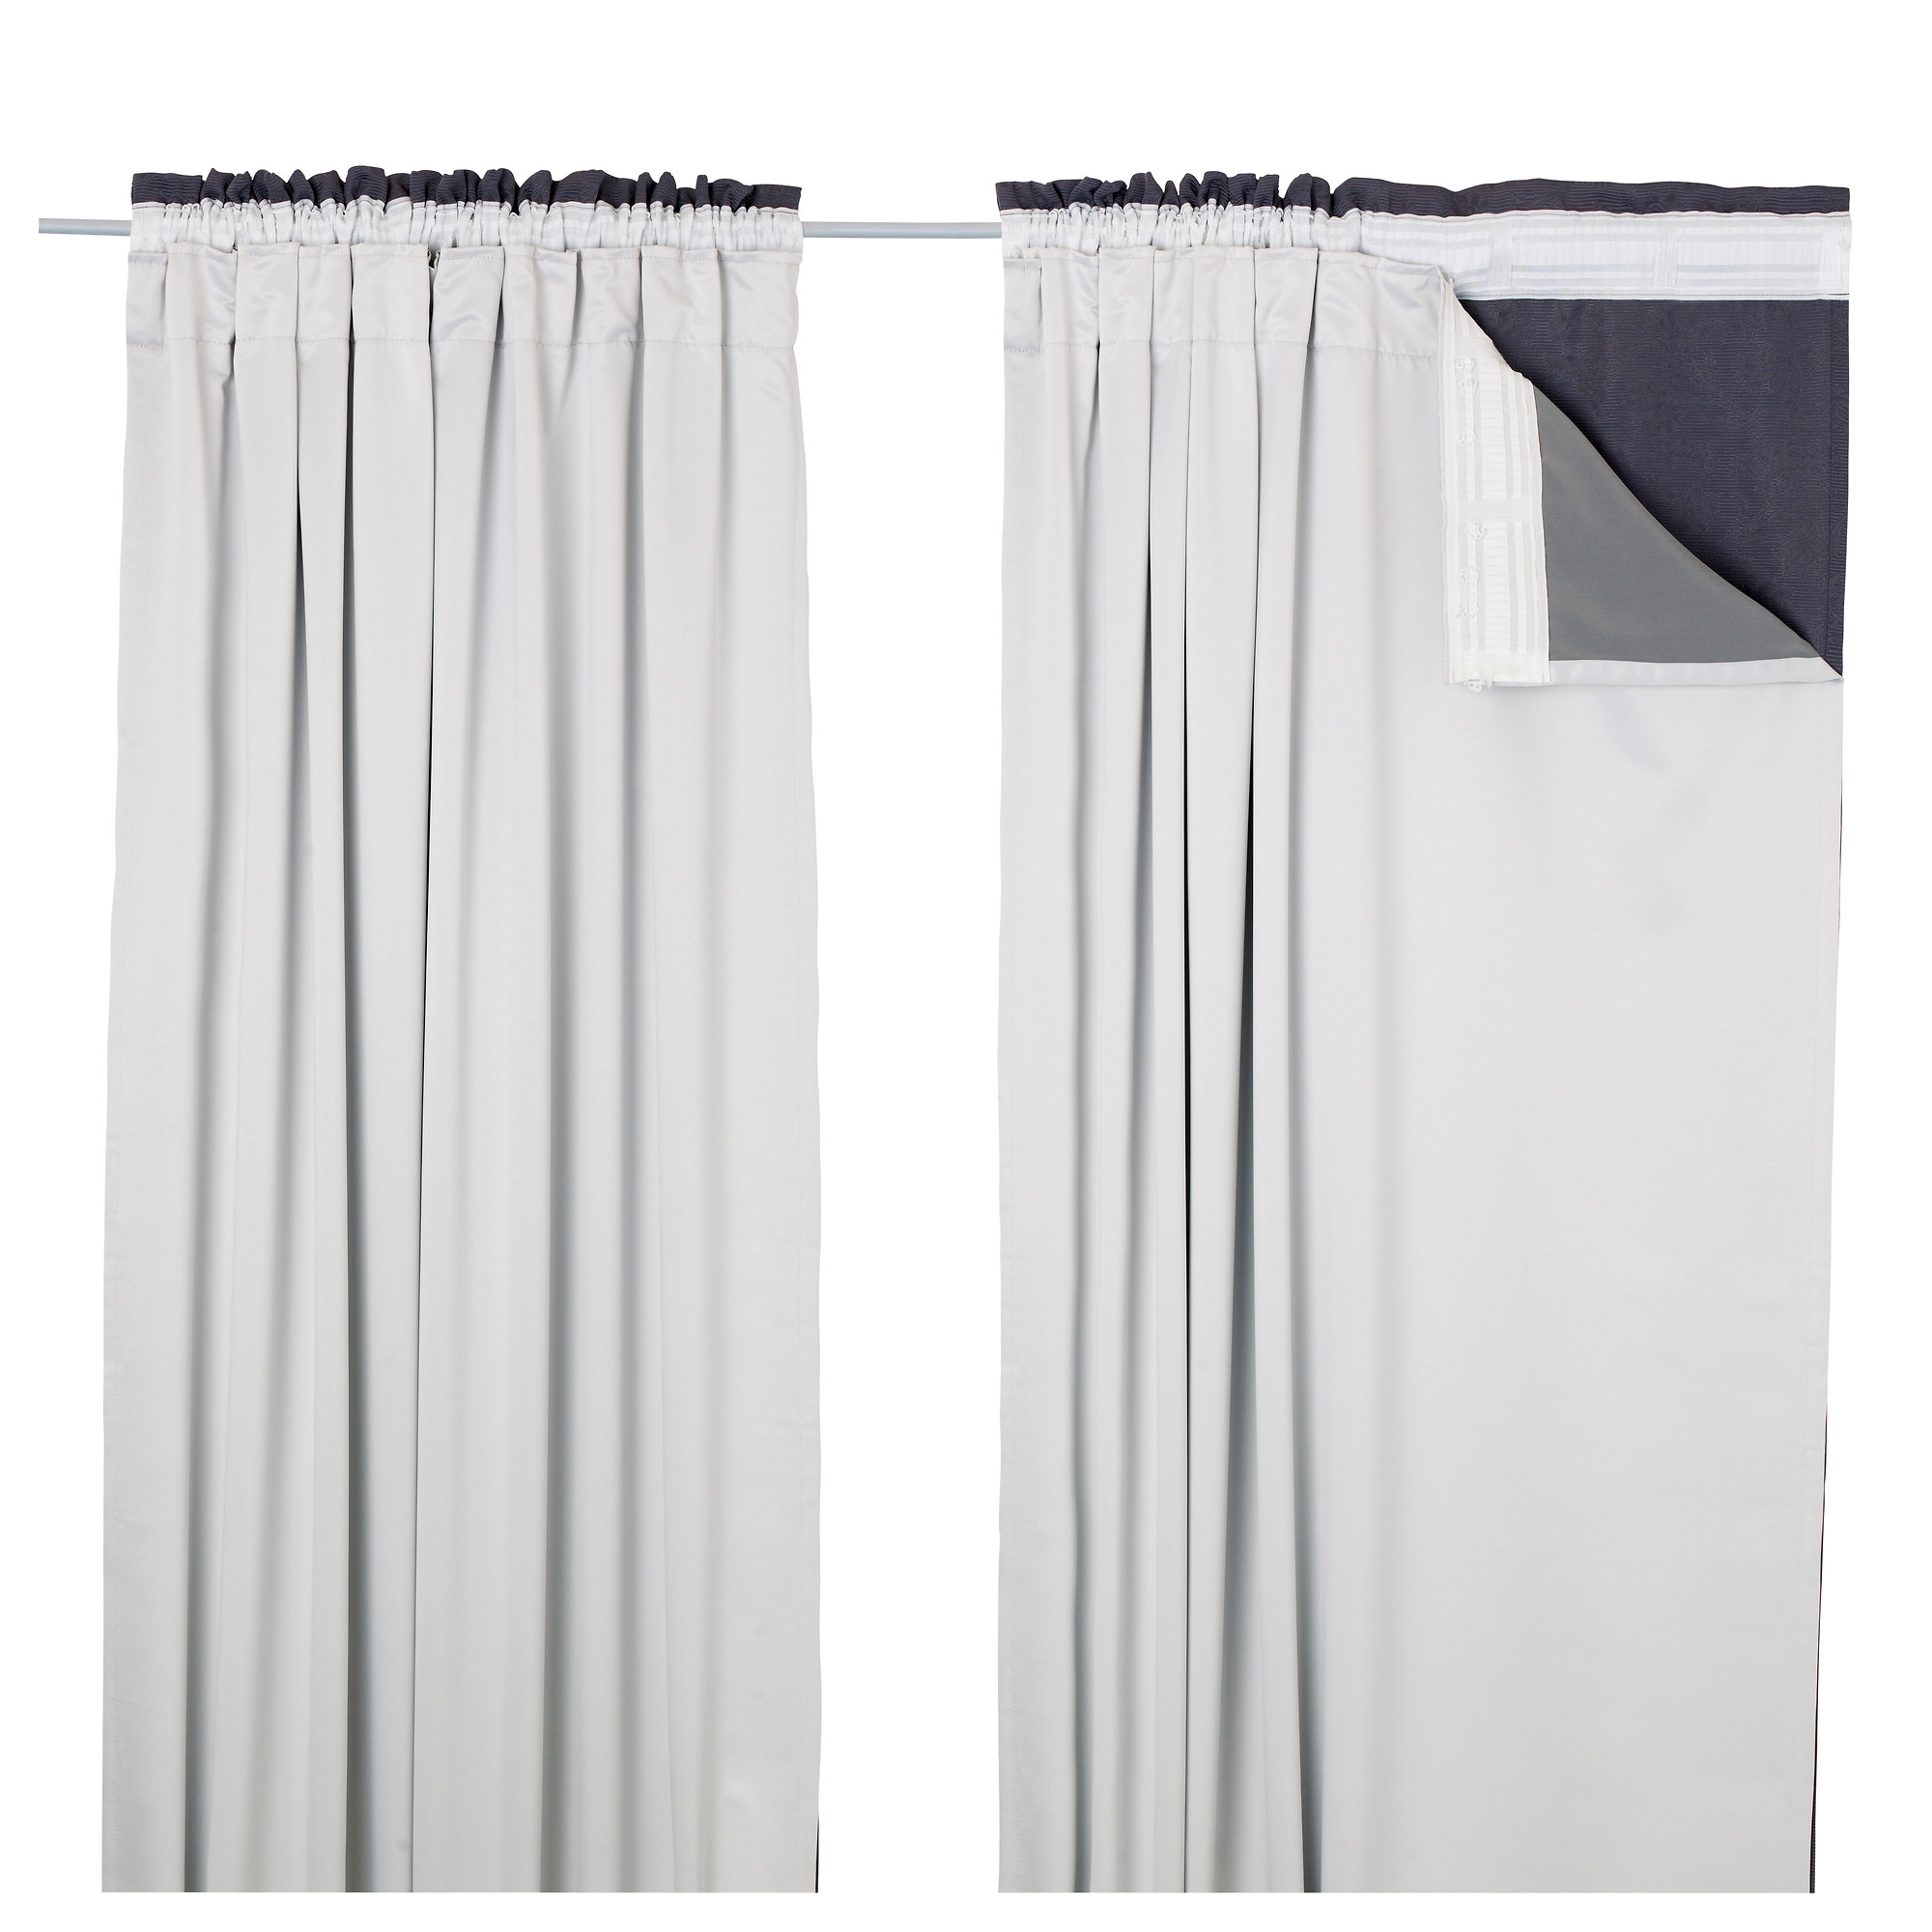 Glansnva Curtain Liners 1 Pair 56×94 Ikea Intended For Curtains With Blackout Lining (Image 5 of 15)